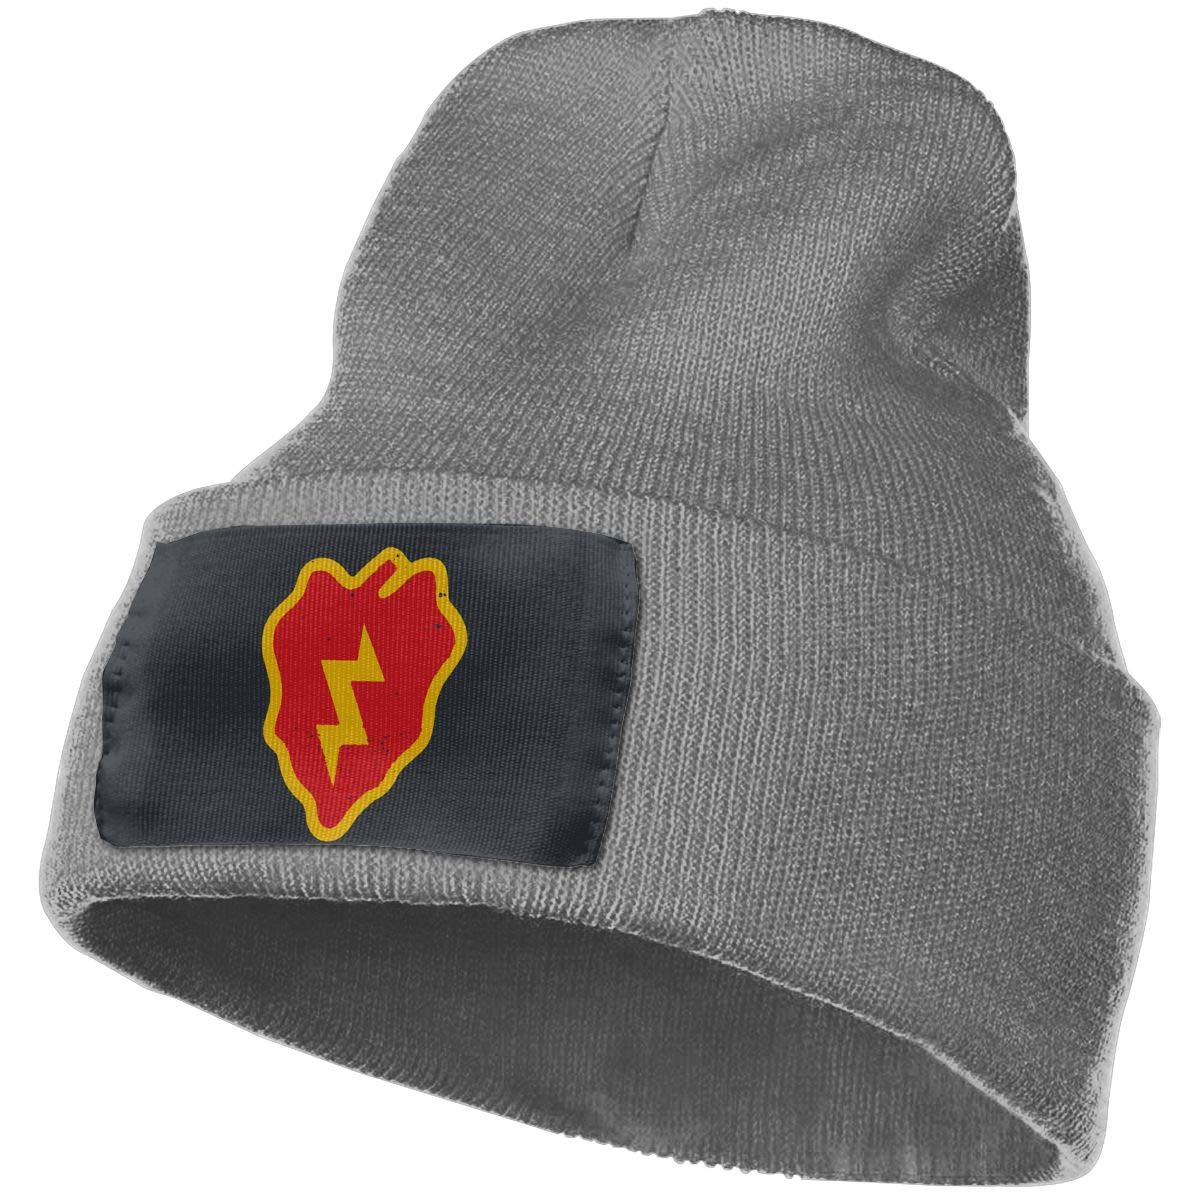 Beanie US Army Retro 25th Infantry Division Knitted Hat Winter Skullcap Men Women